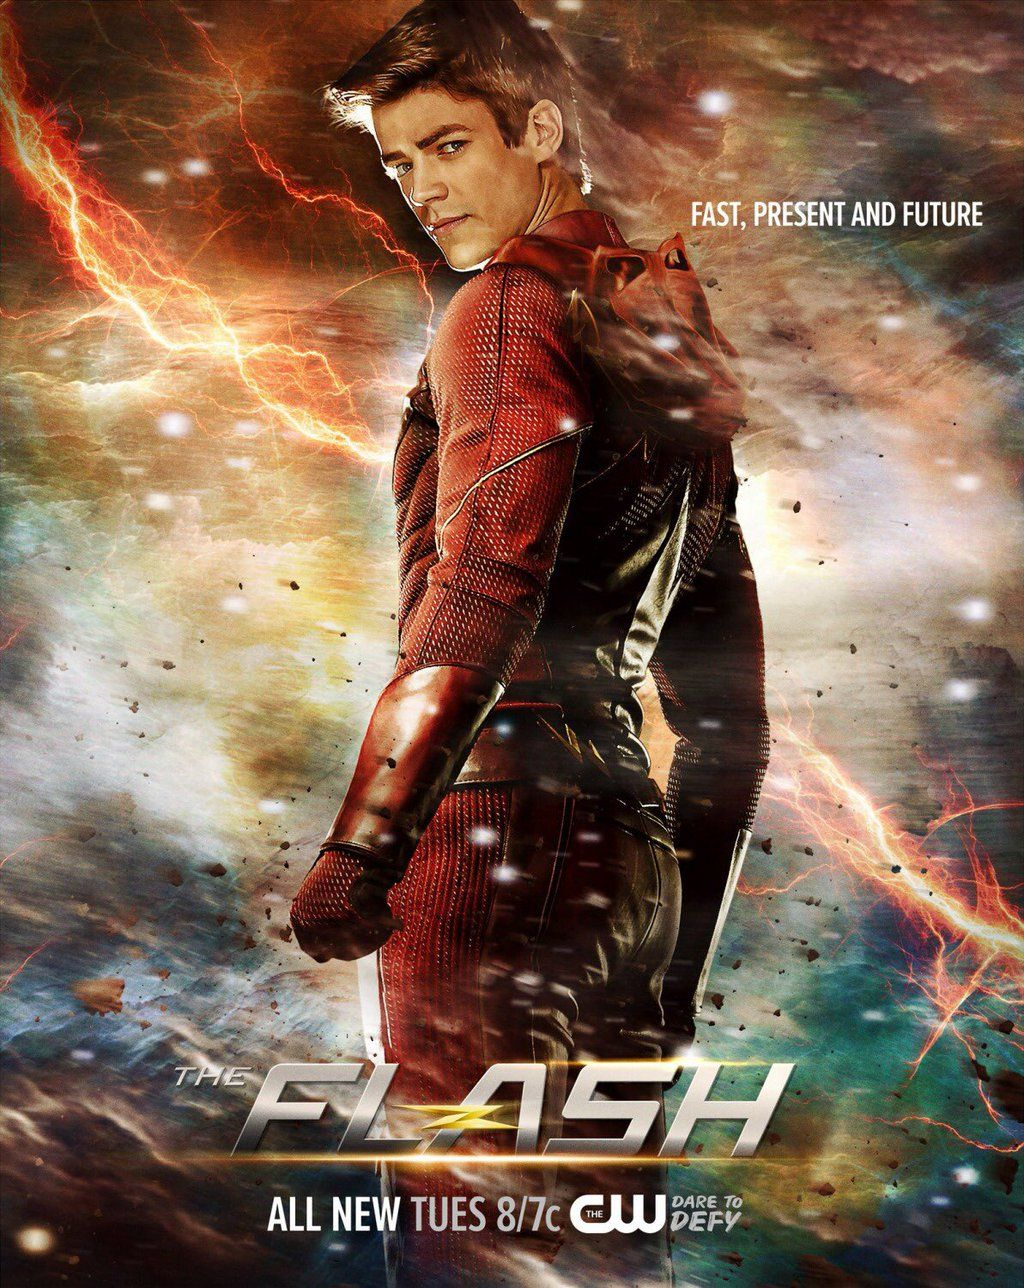 CW The Flash Season 3 Spoilers: How Long Will Flashpoint